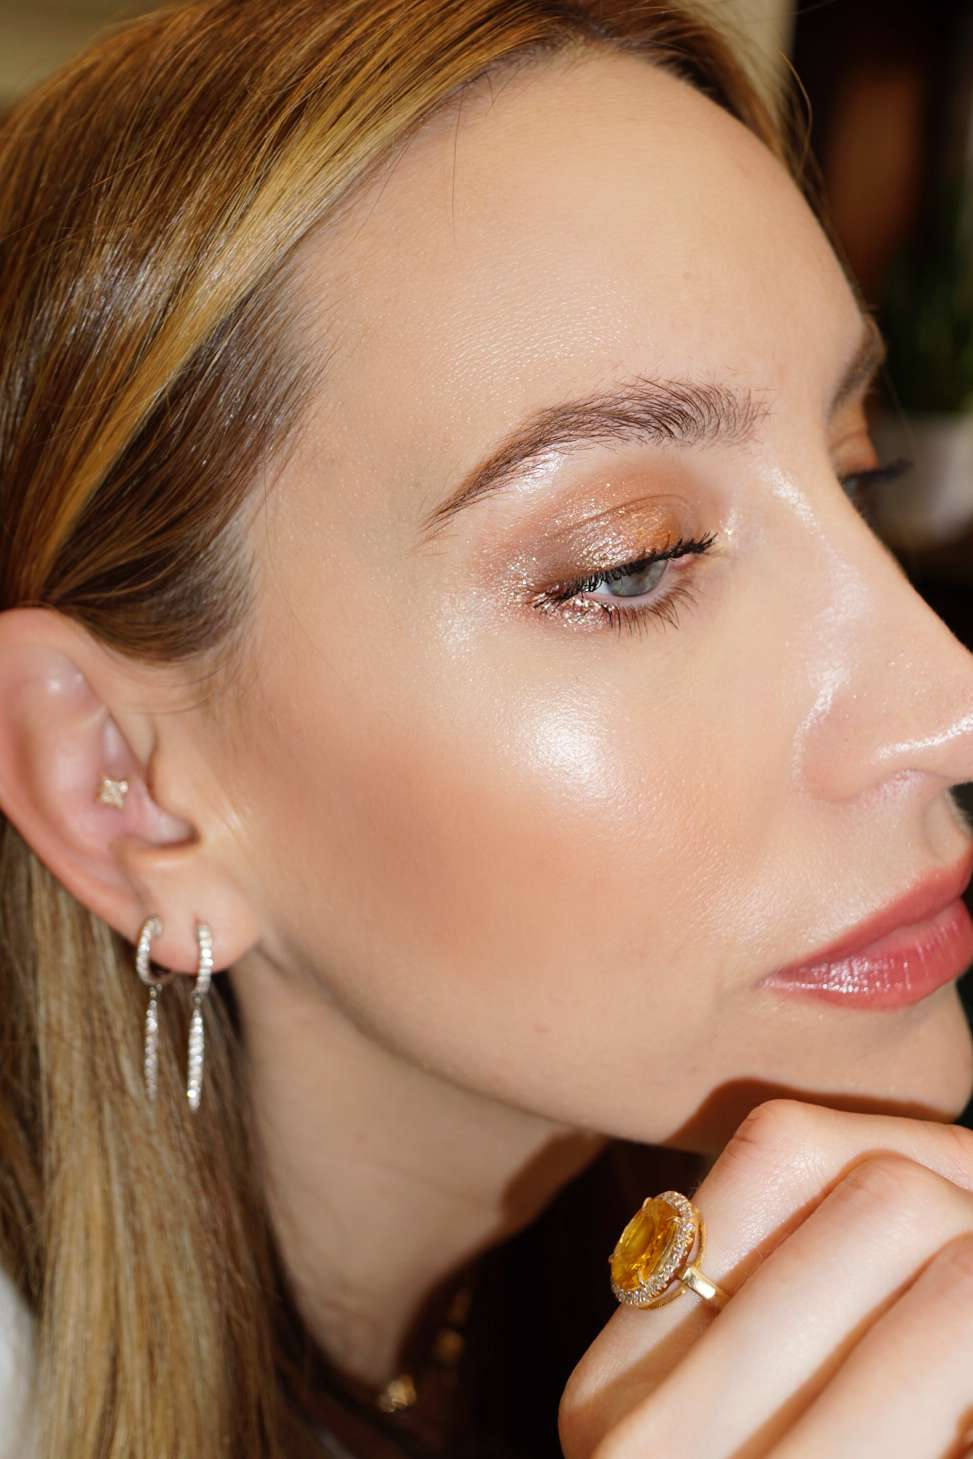 7 Makeup Secrets From the Queen of Effortless L.A.-Girl Glow